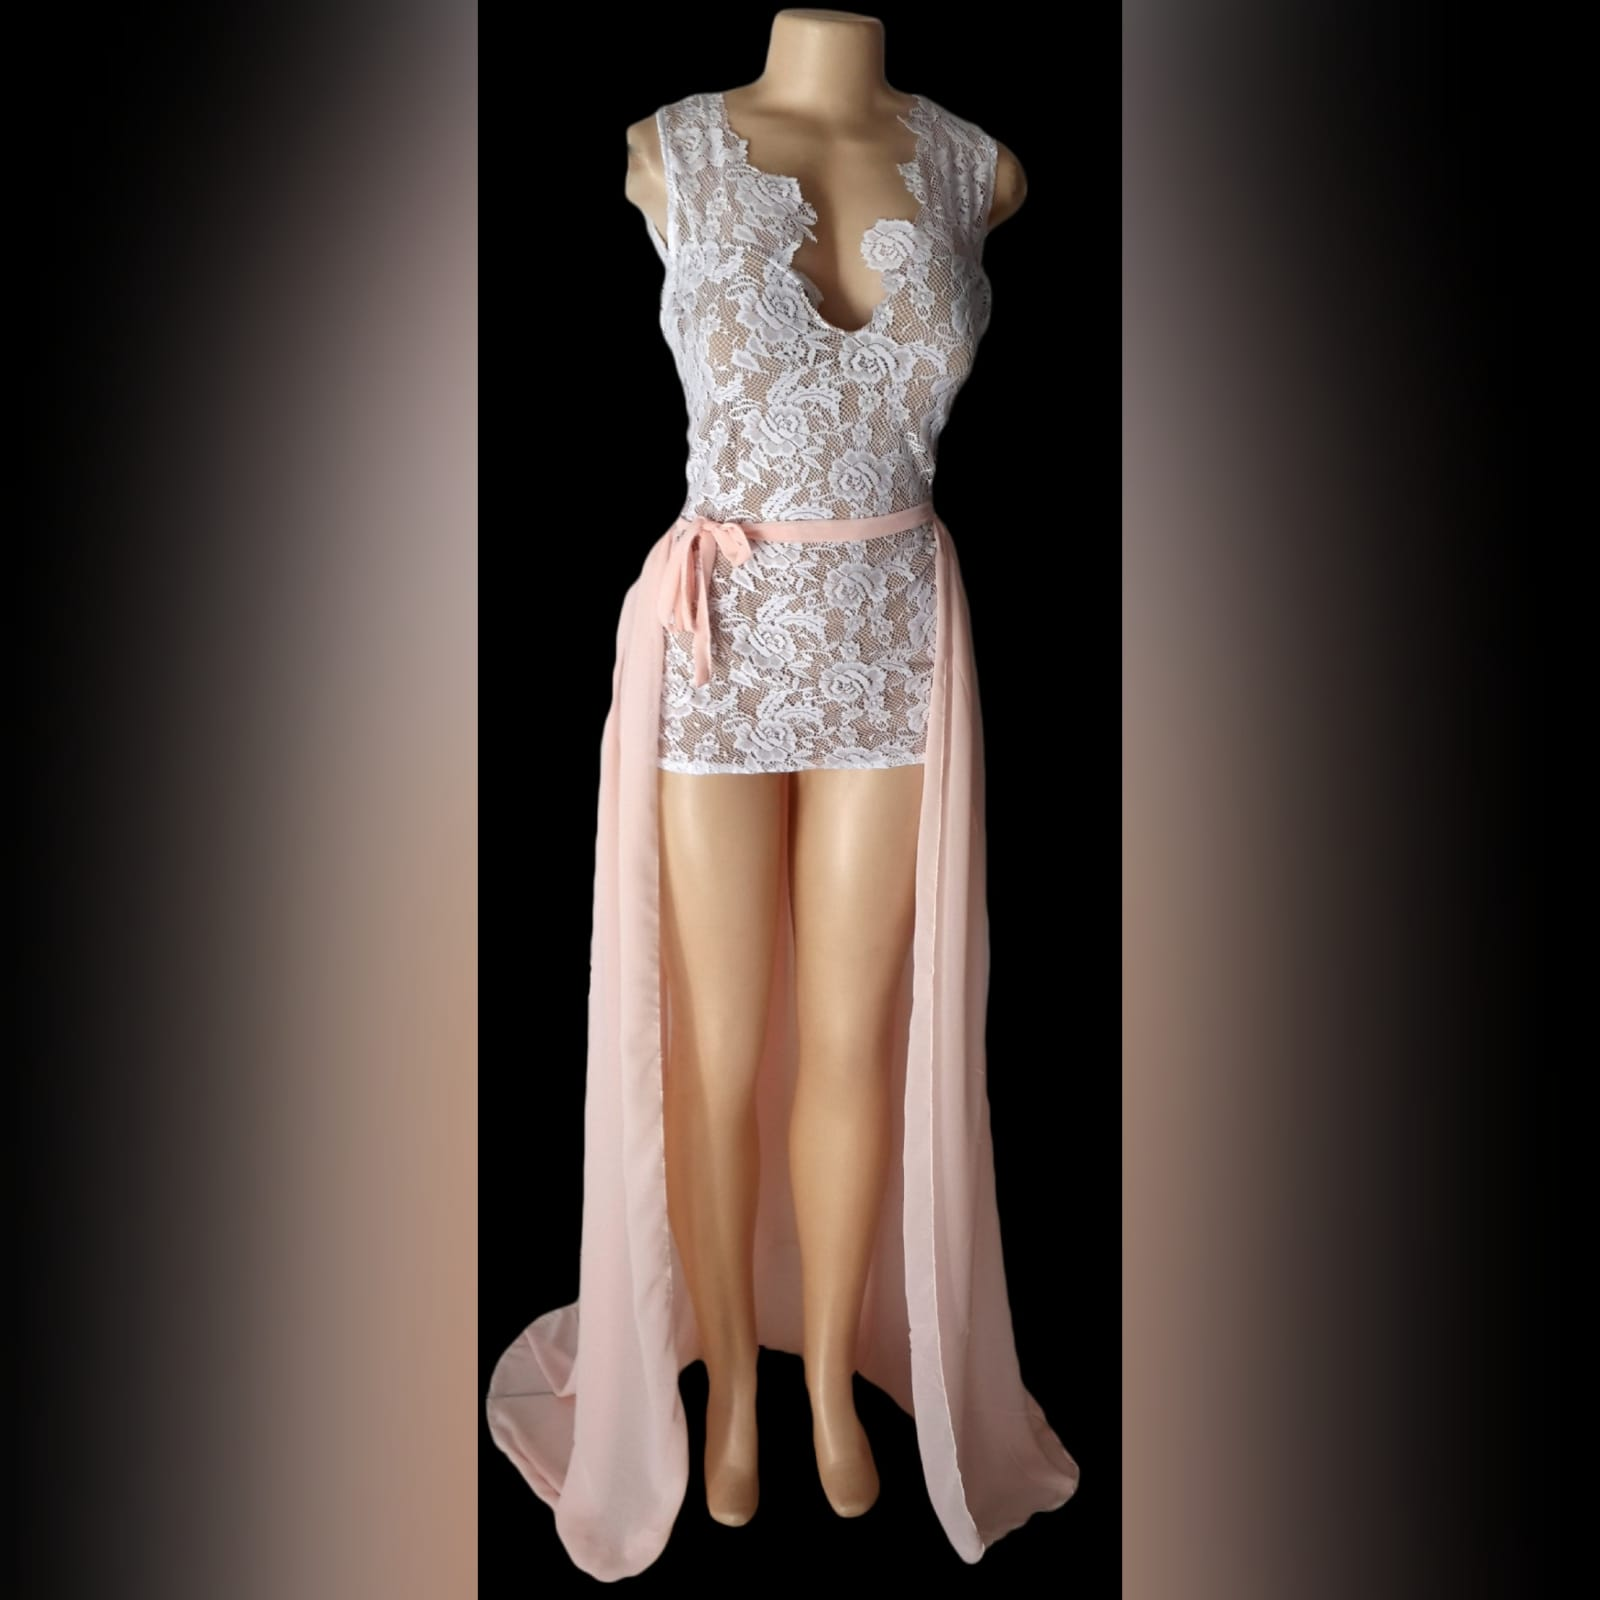 Peach and white 2 piece evening dress 1 peach and white 2 piece evening dress. Mini lace dress with a low open back, with a detachable back peach train